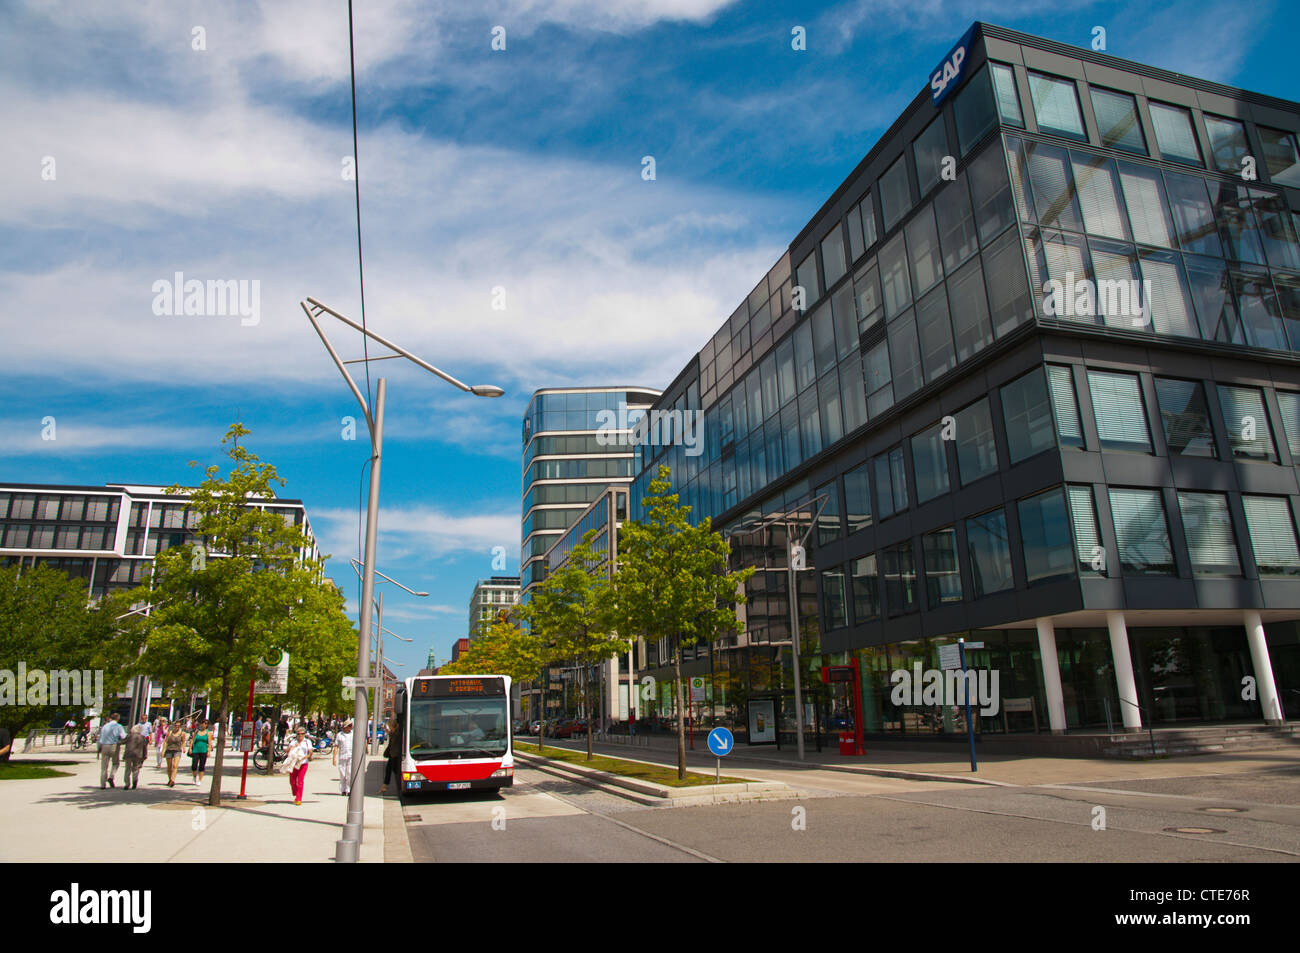 HafenCity former harbour area central Hamburg Germany Europe - Stock Image